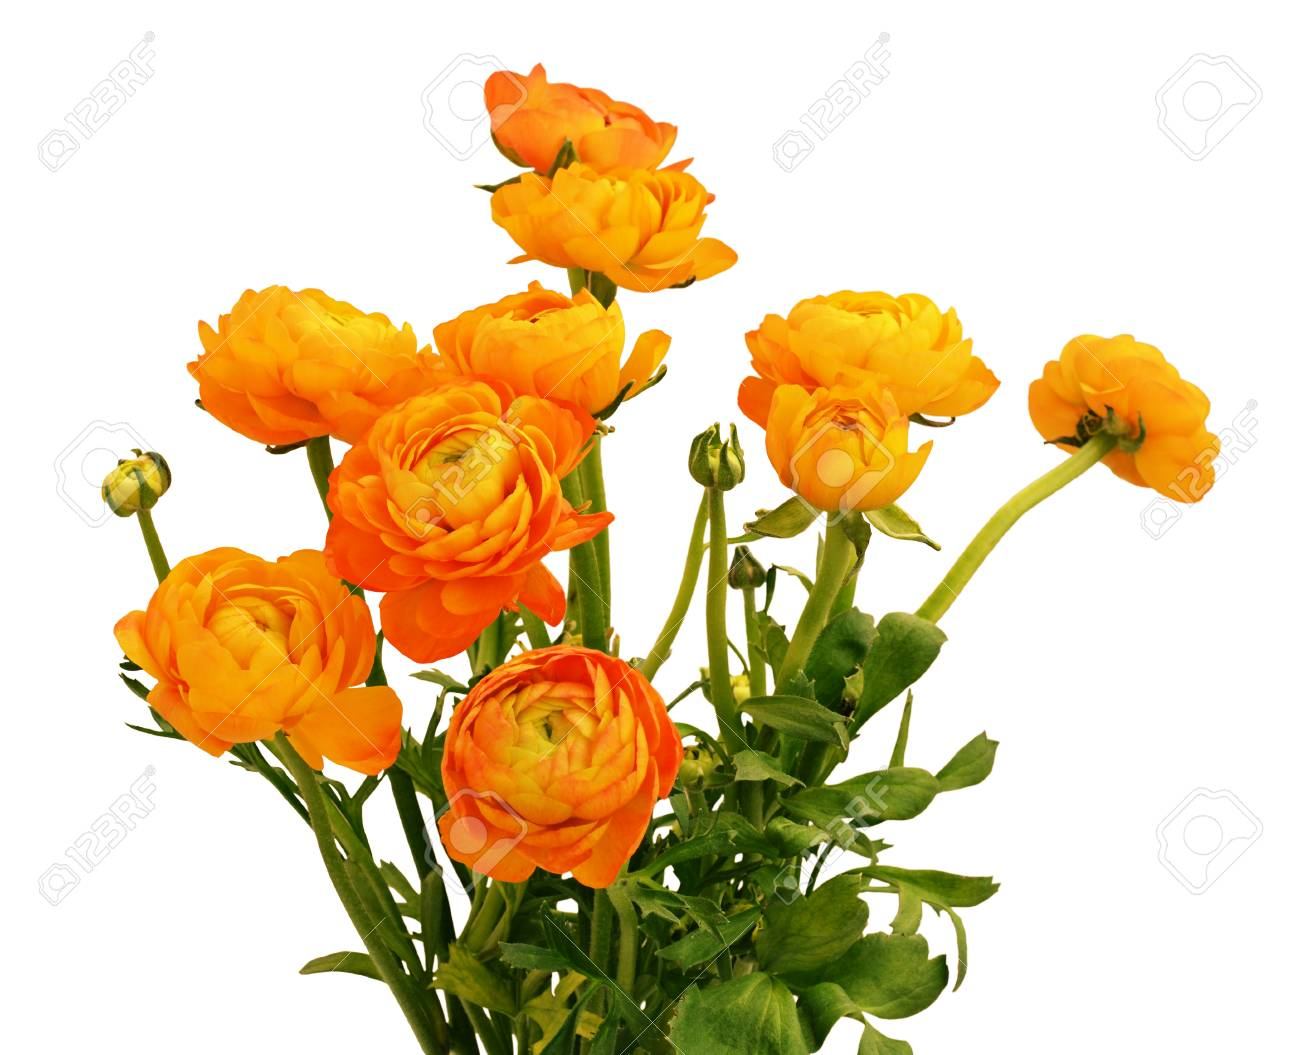 Orange Ranunculus Flowers Bouquet Isolated On White Background Stock Photo Picture And Royalty Free Image Image 92041766